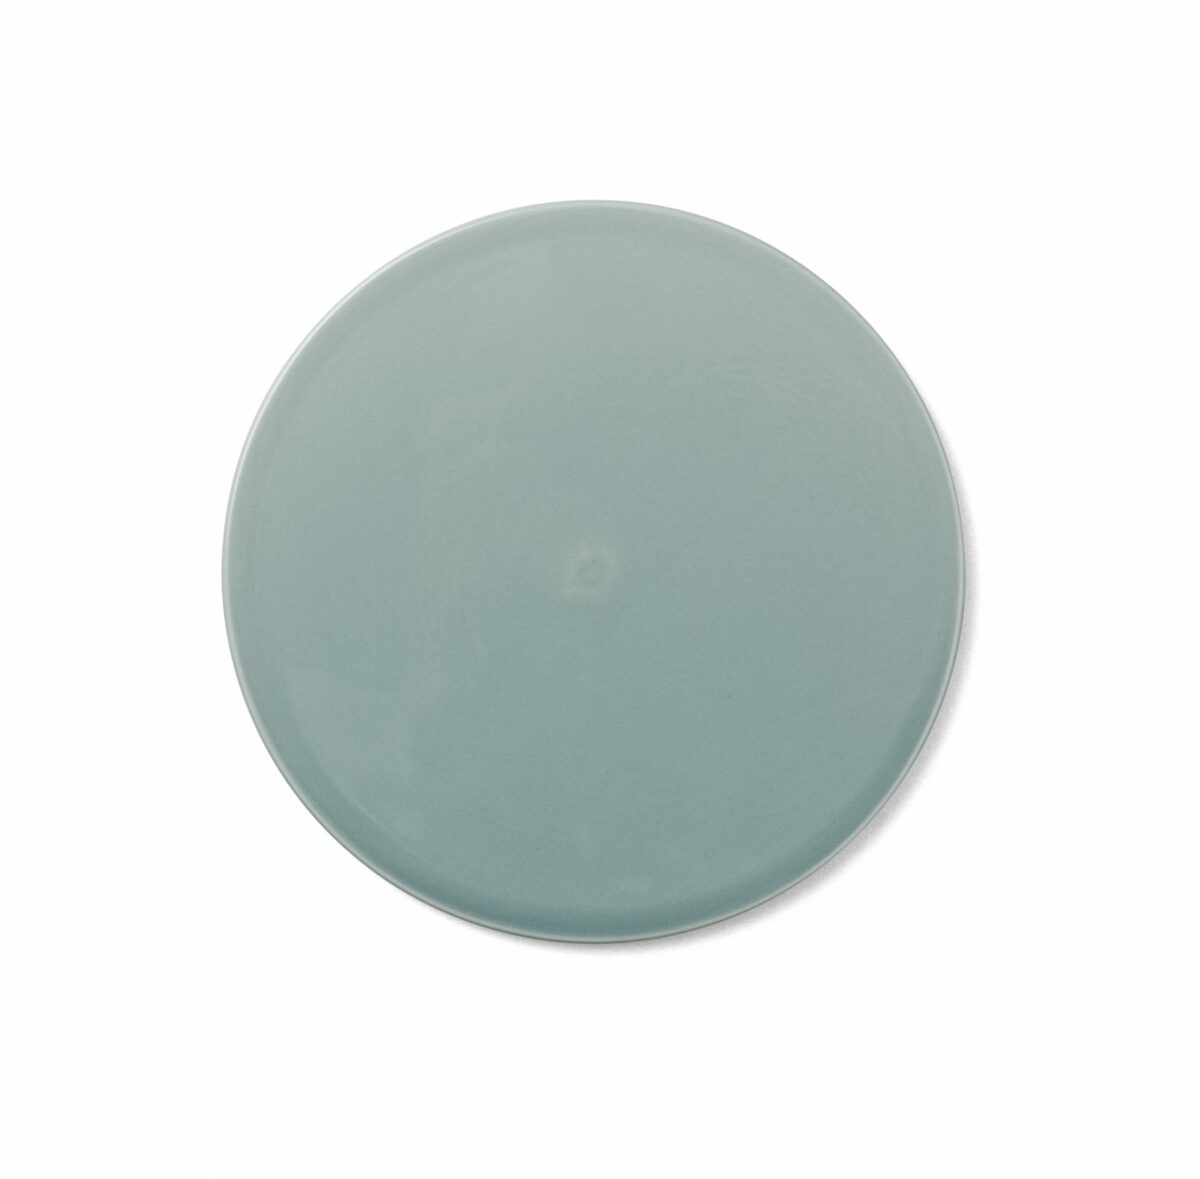 2013410 New Norm Plate lid O215 cm Cool Green Norm 01